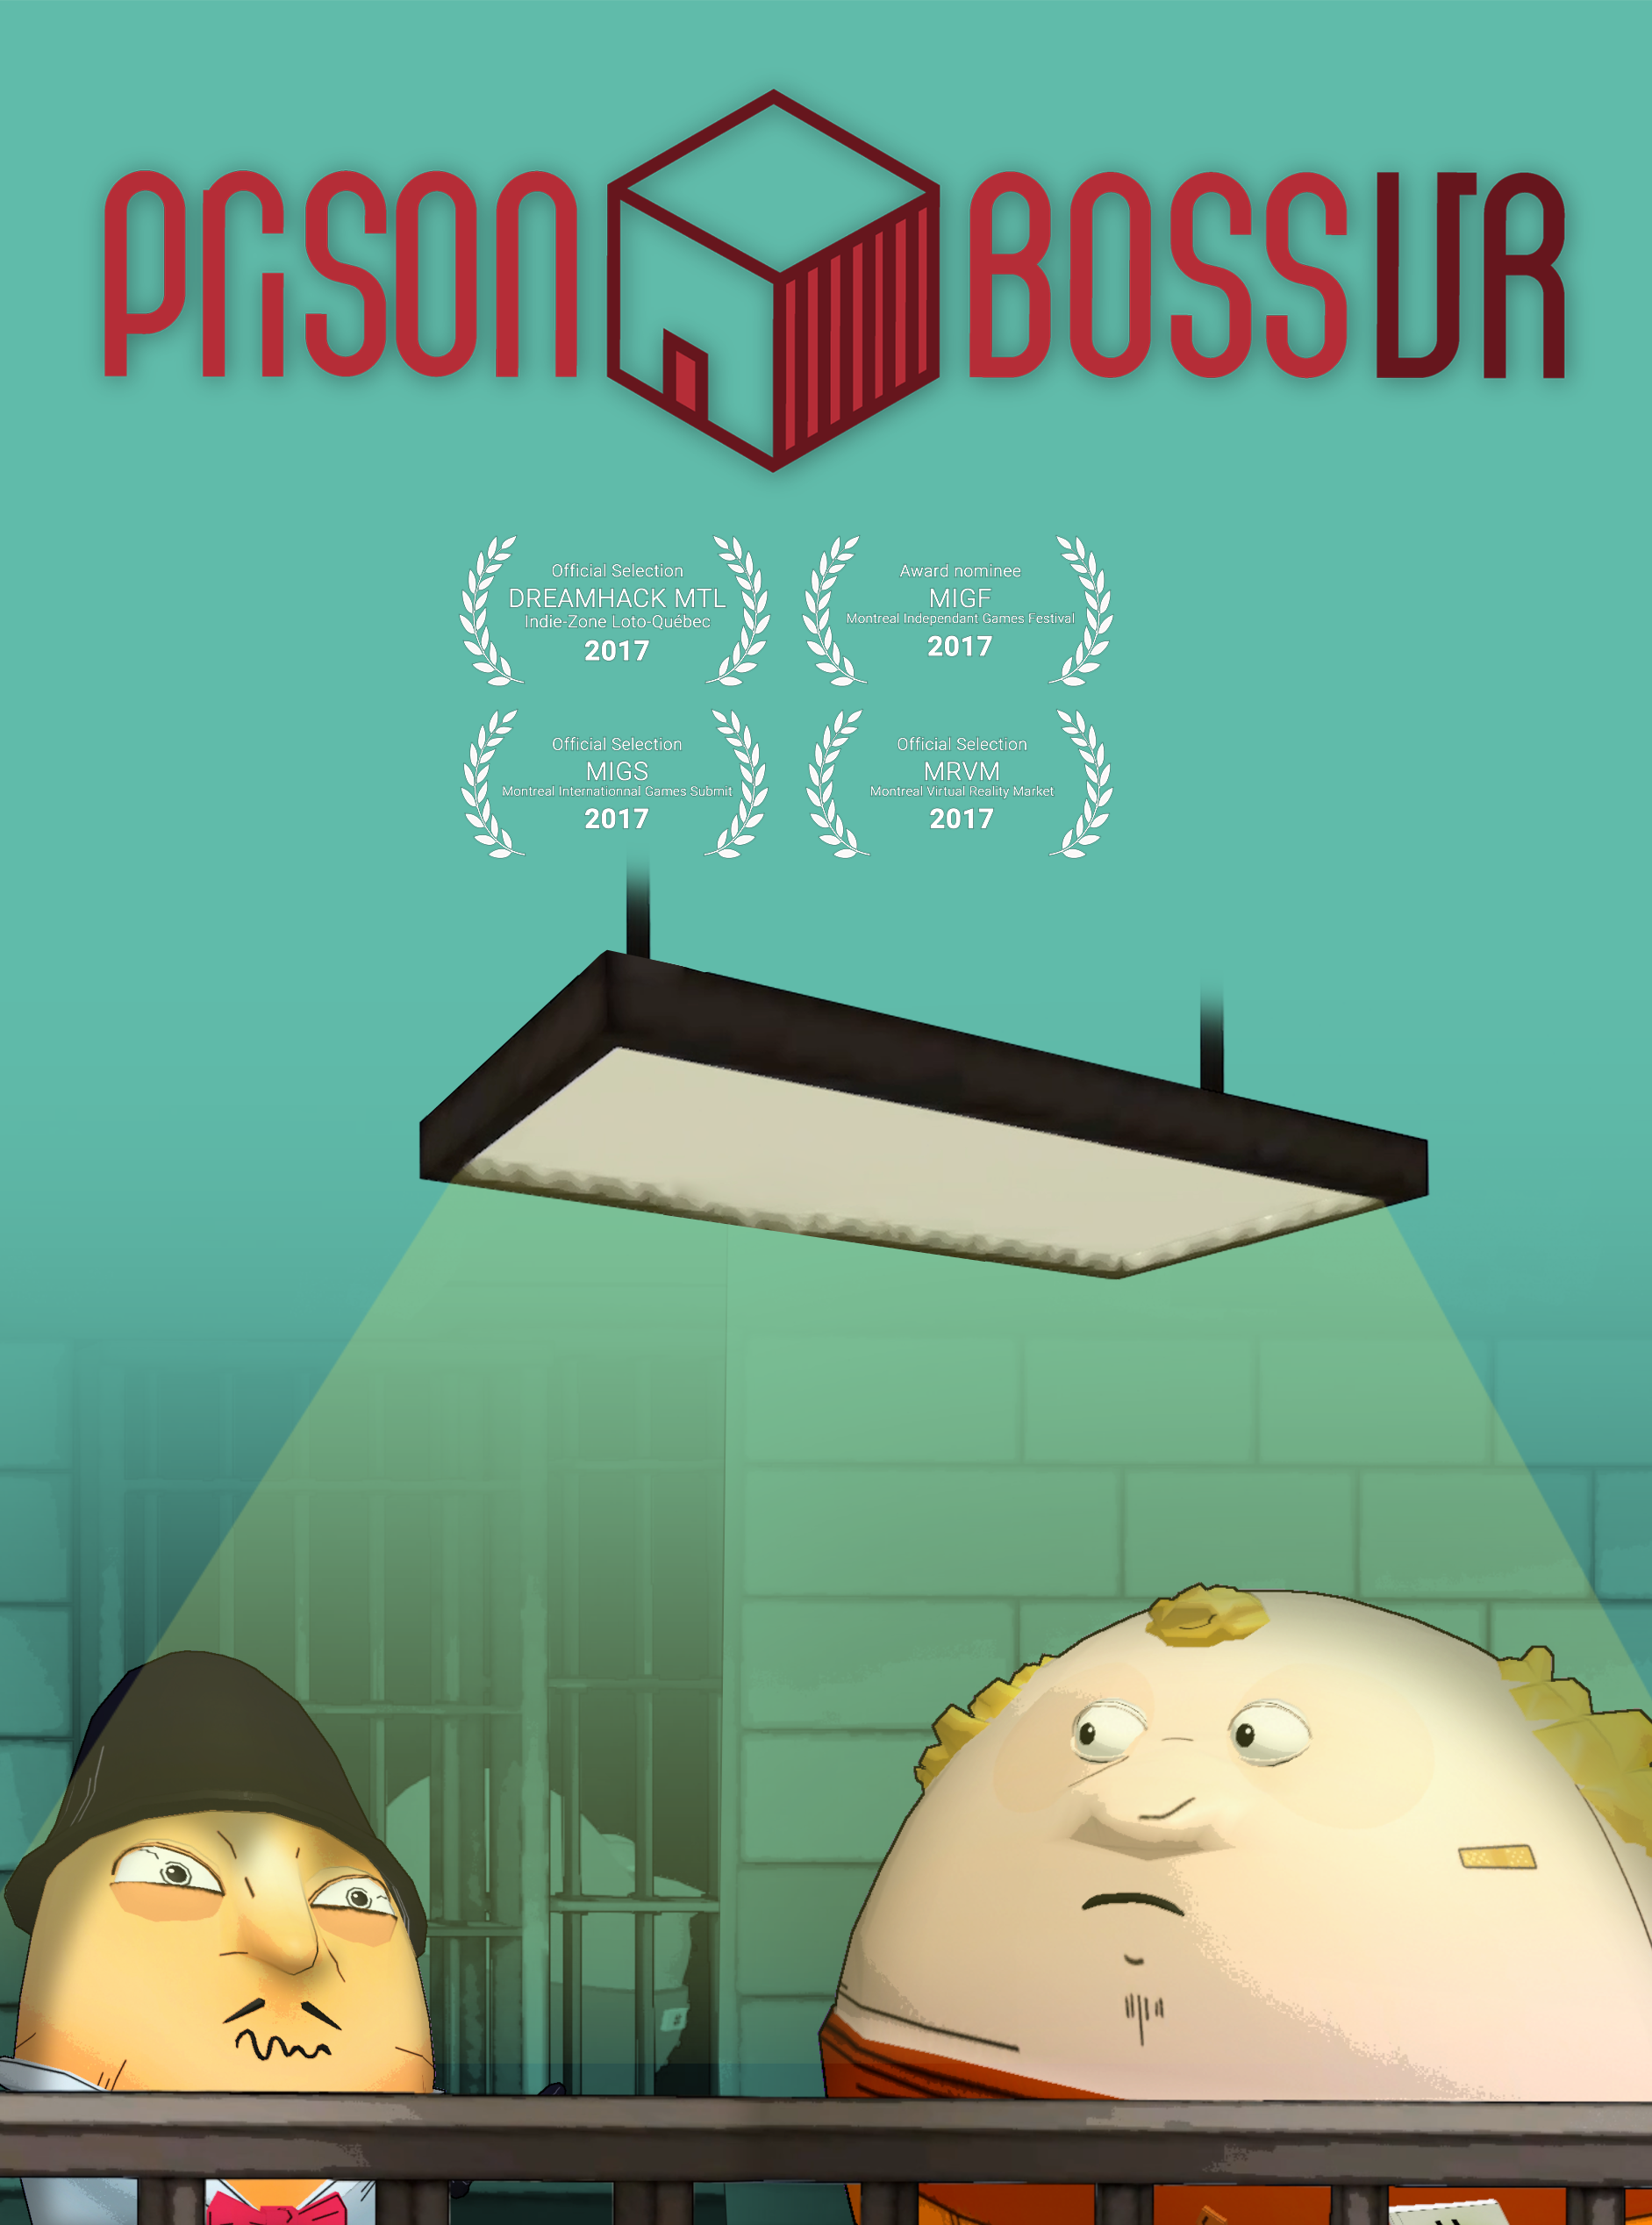 [...]this is a VR game we'd happily return to as a reward for good behavior. -UploadVR - Prison Boss VR is a crafting and trading game using room-scale to turn your VR space into a jail cell! Craft cigarettes, alcohol and cookies for other inmates! Customize your cell as your reputation grows! Earn cash until you can't store it anymore and become the Prison Boss!